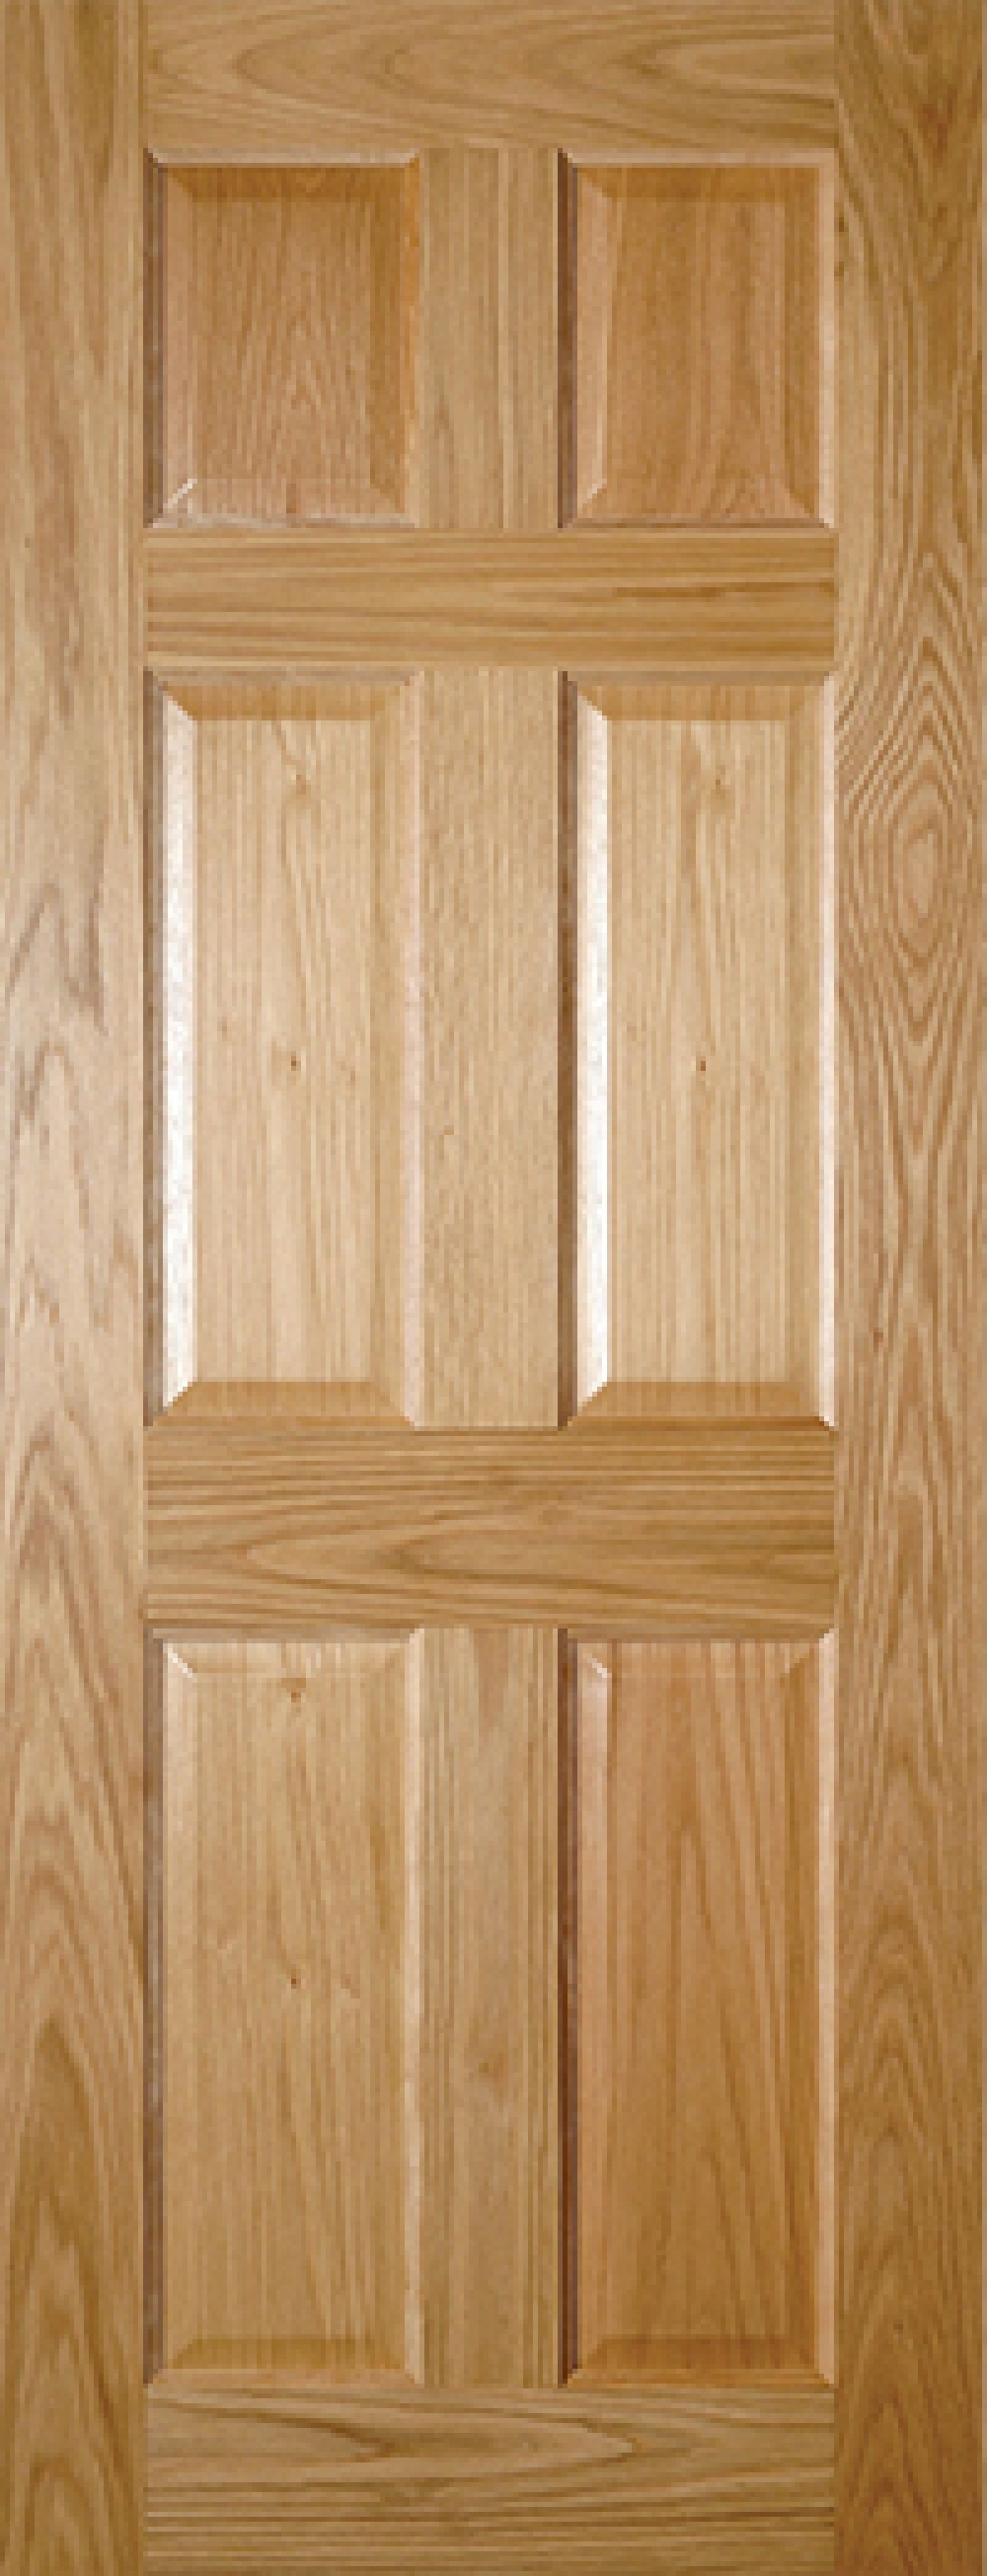 Oxford 6 panel oak door prefinished oak doors vibrant for 6 panel doors